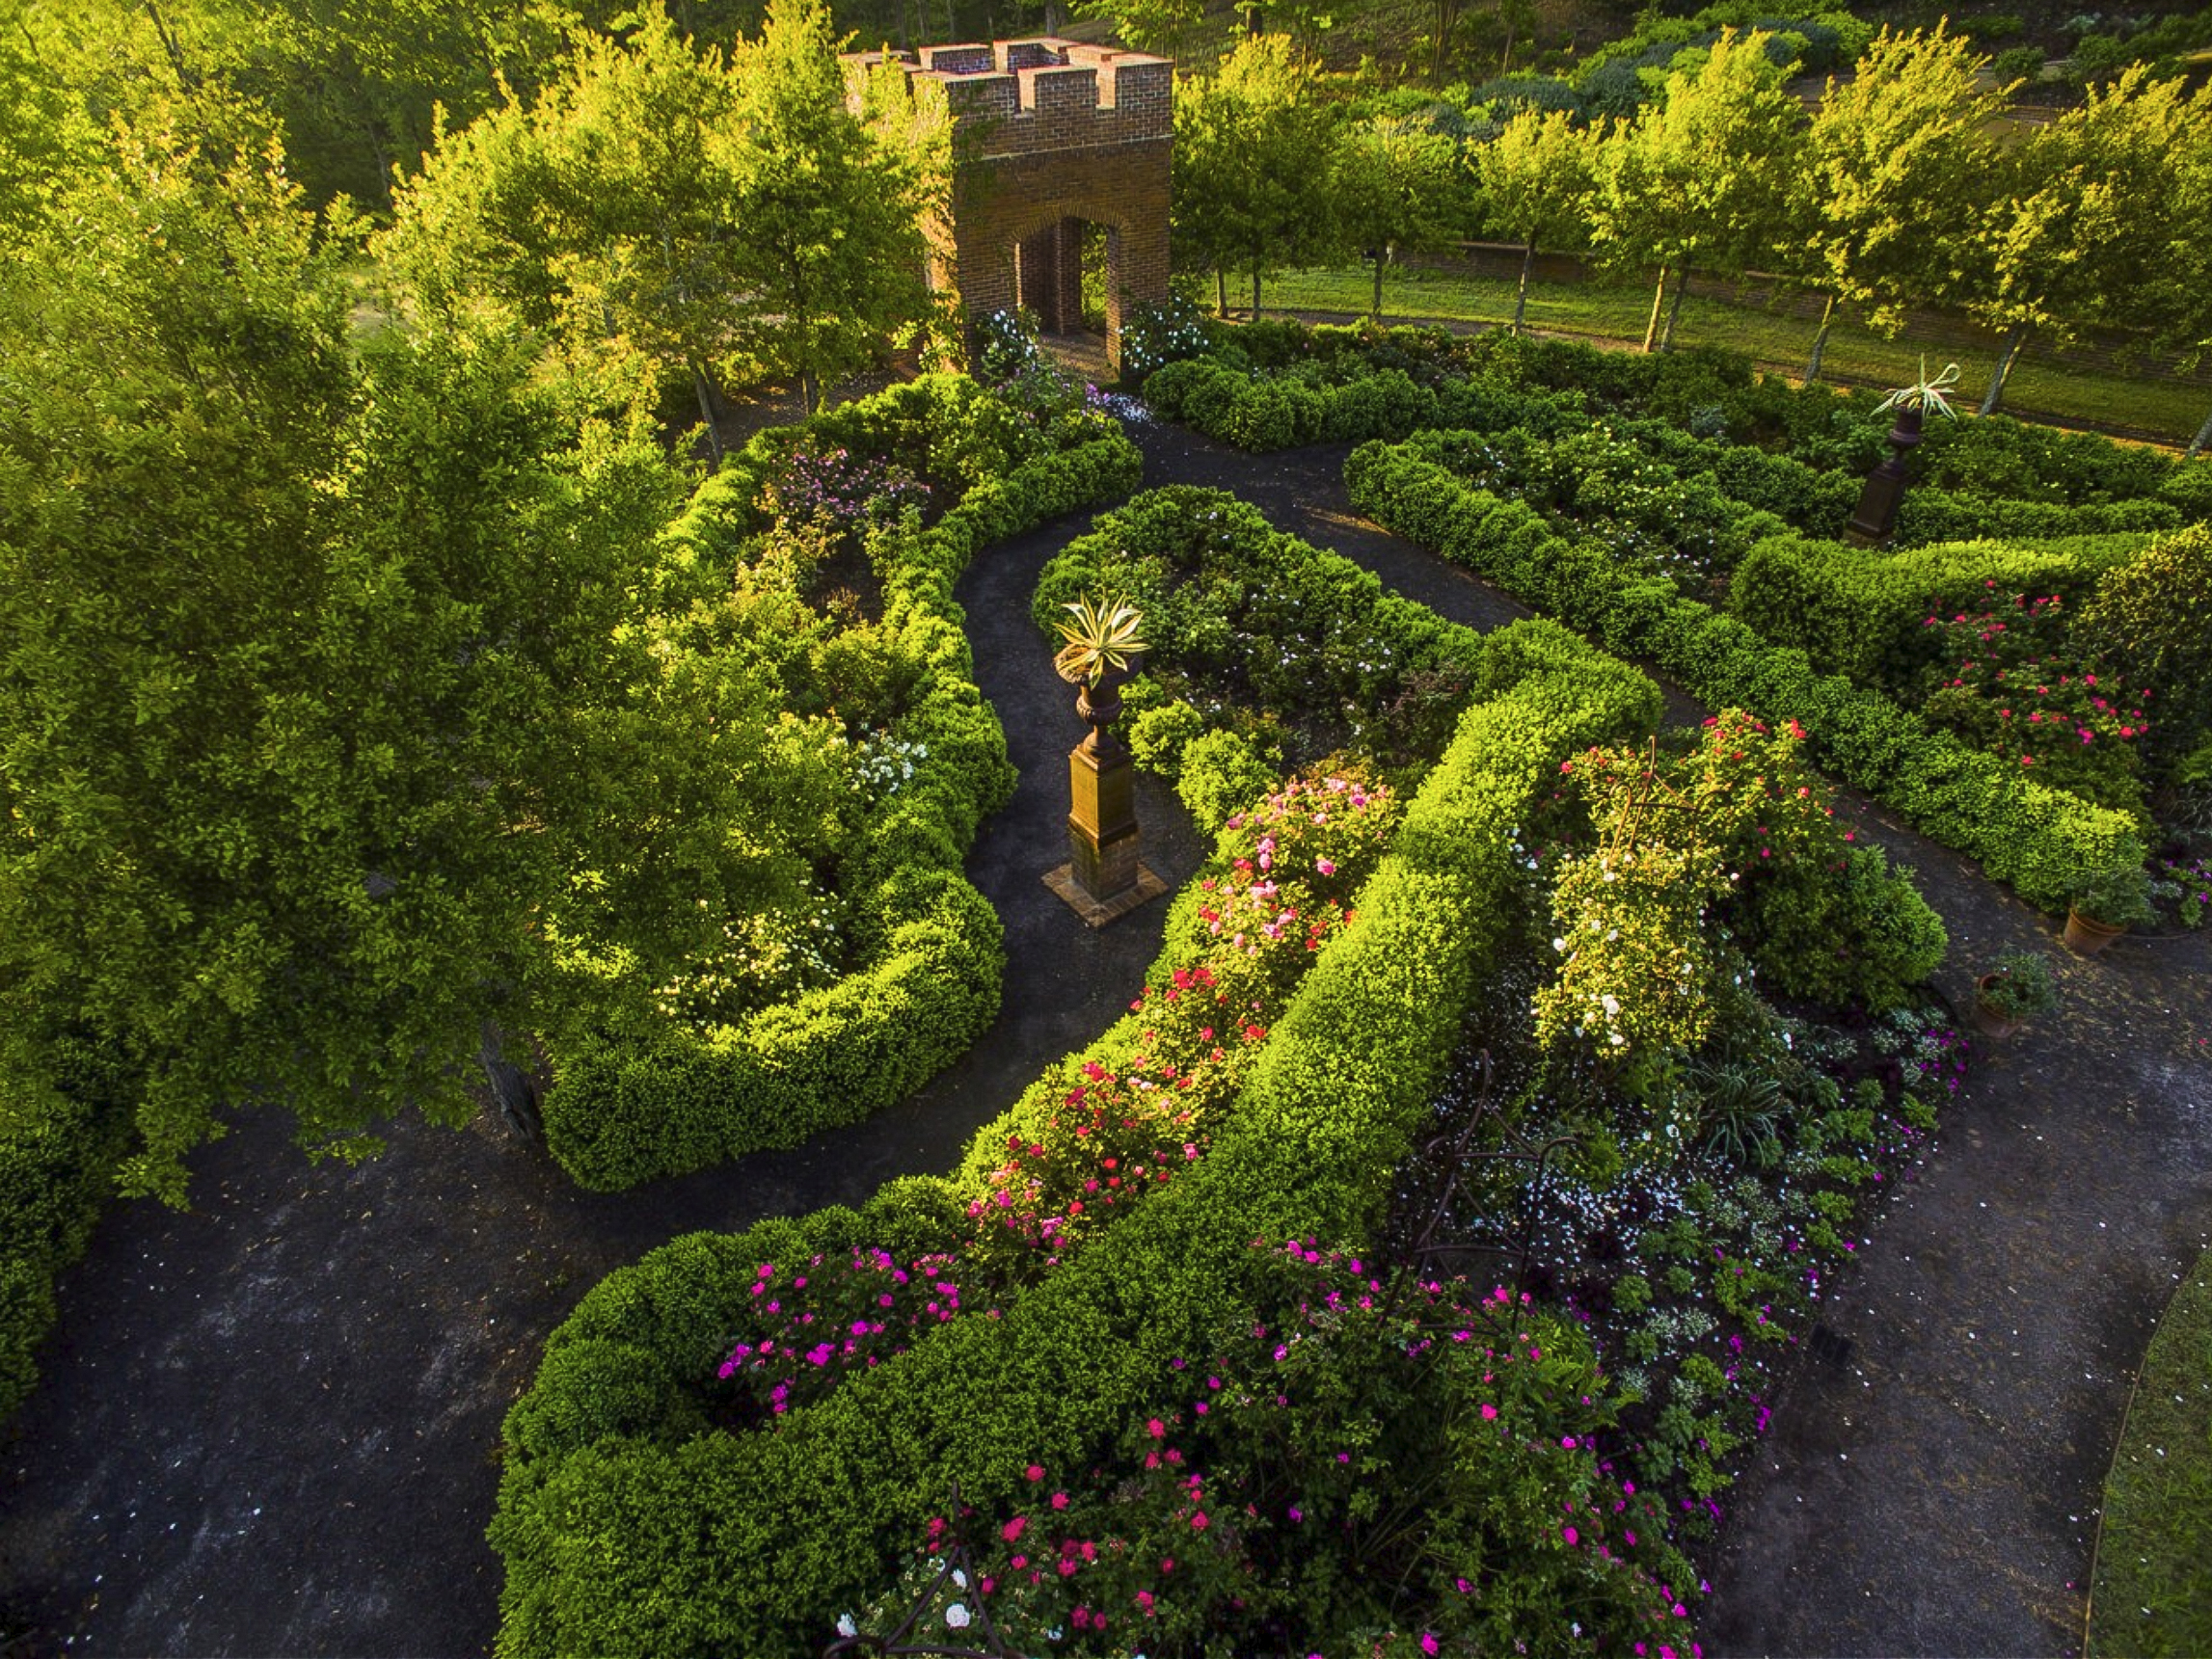 ... organic gardening and the preservation of heritage poultry breeds. Garden tours are also available for guests who are looking to learn more.